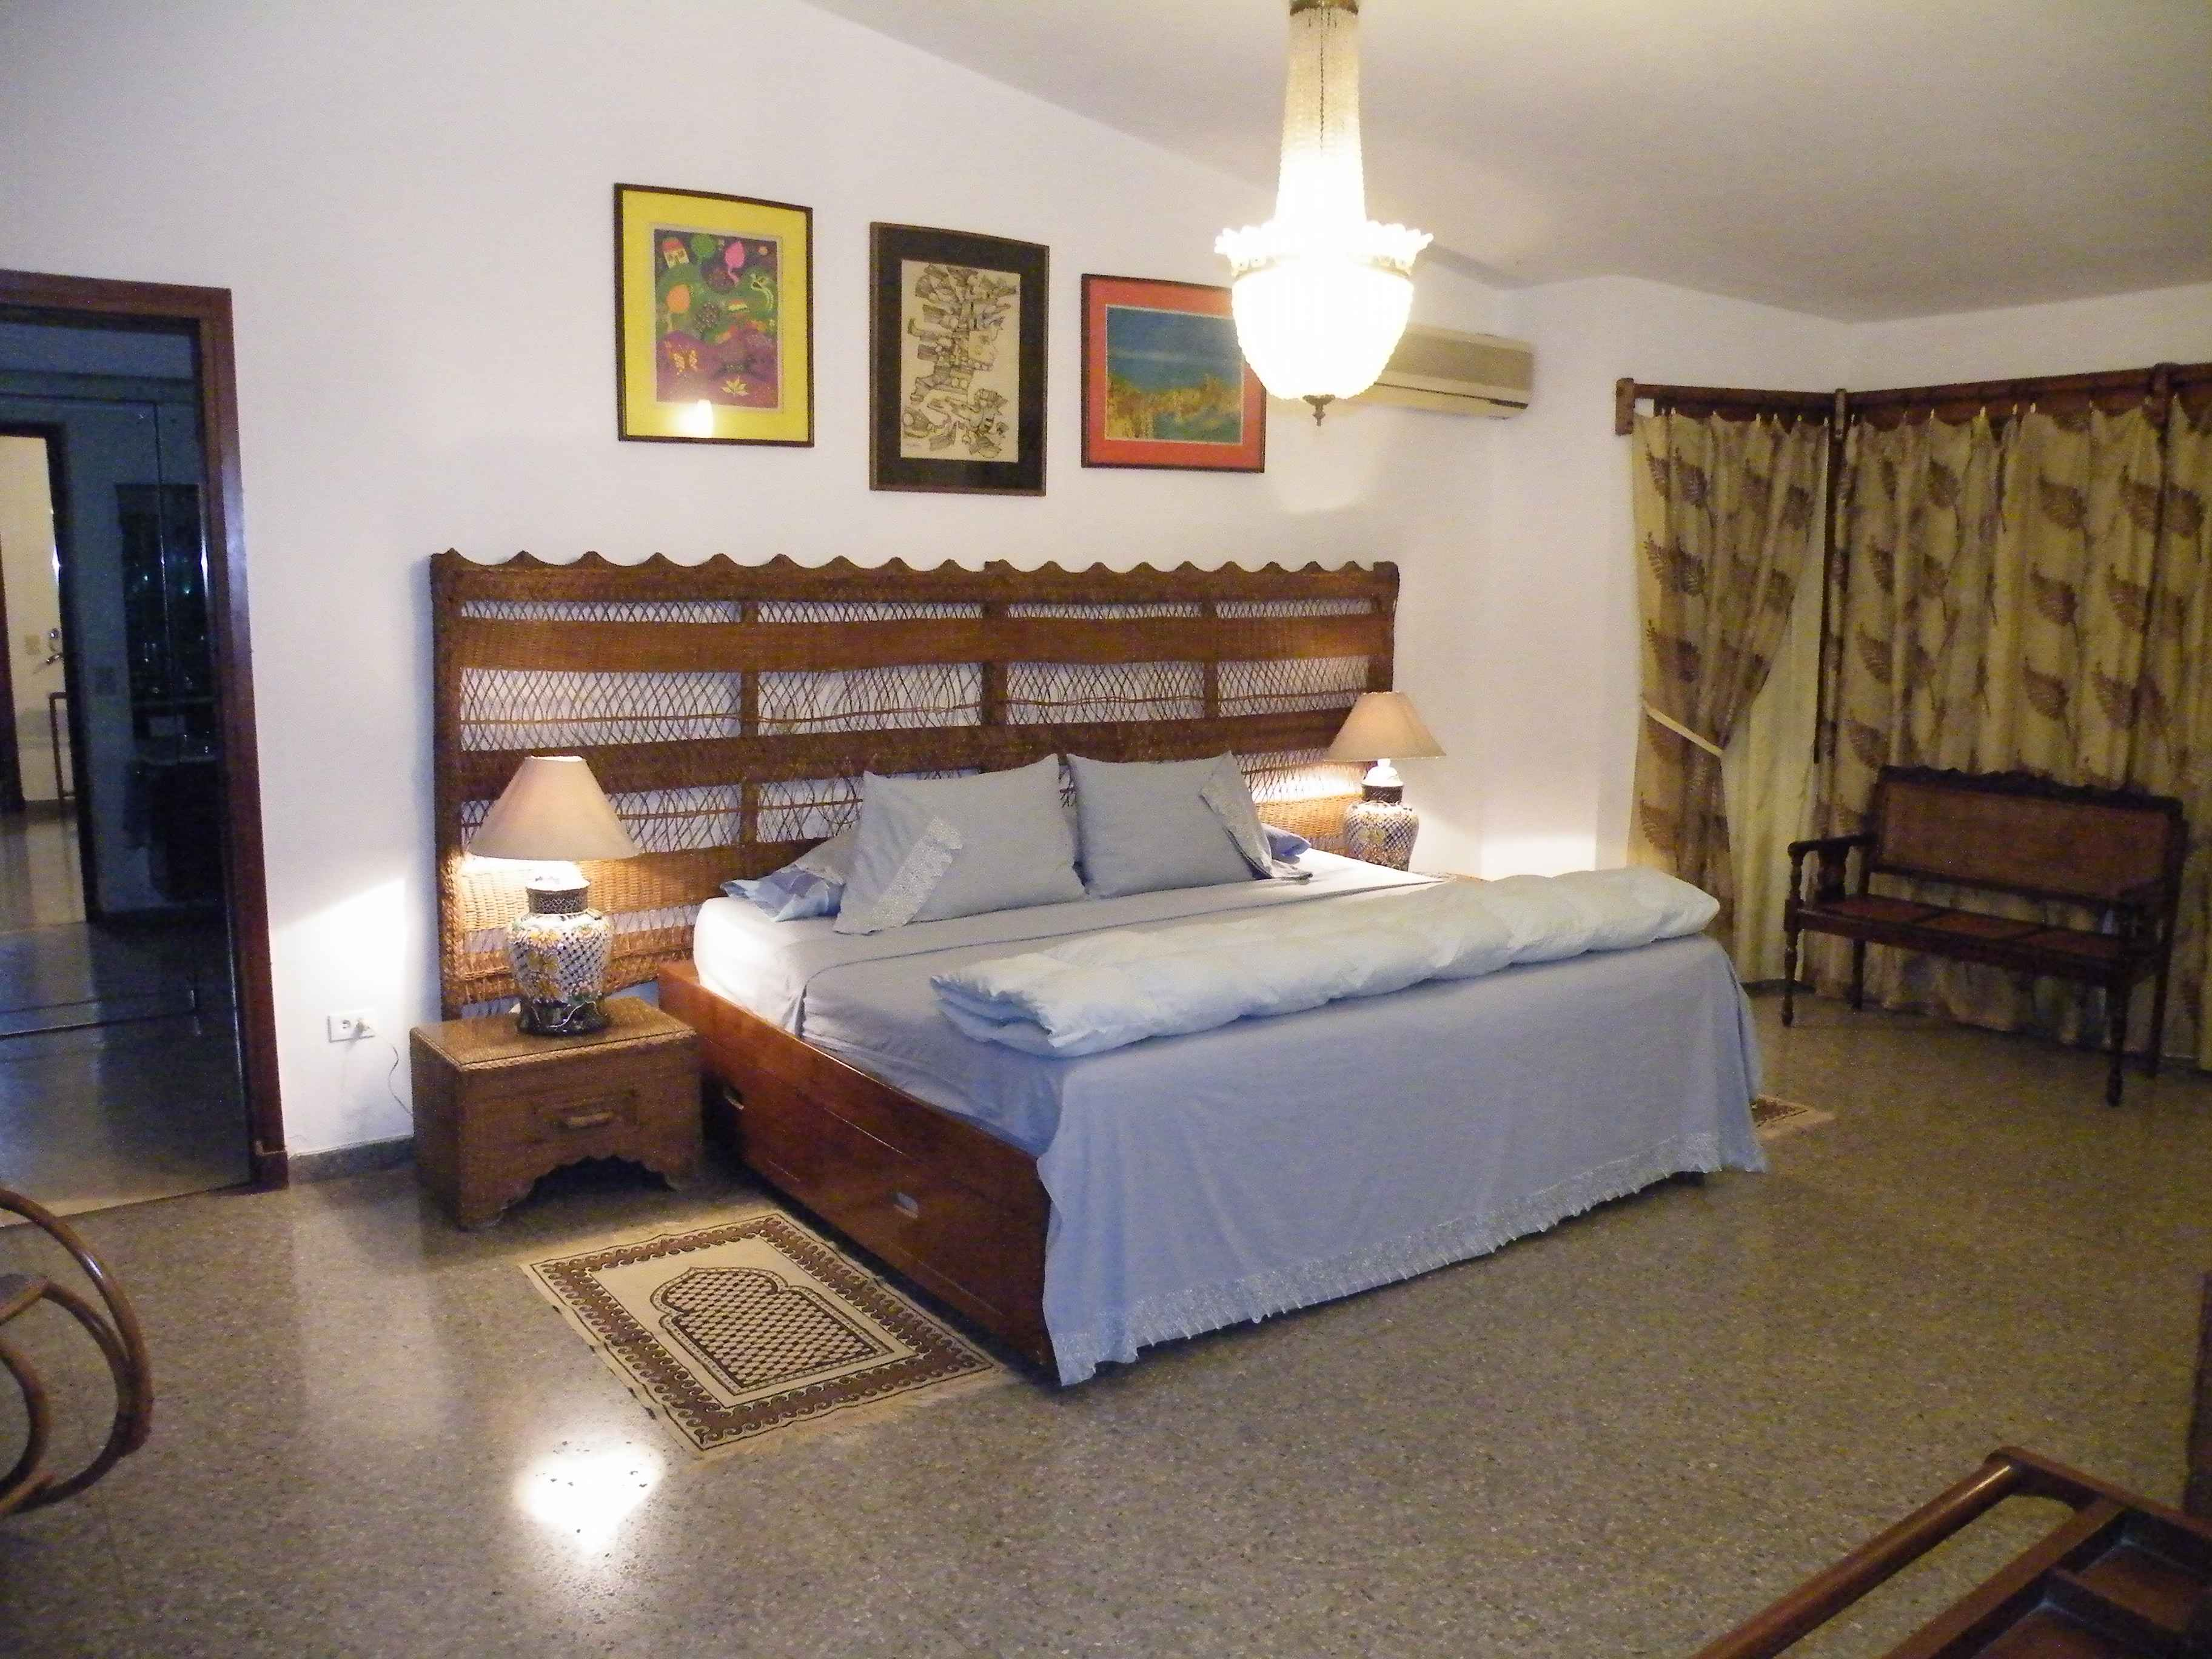 HAV506 – 1 double bedroom with private bathroom - Exclusive use